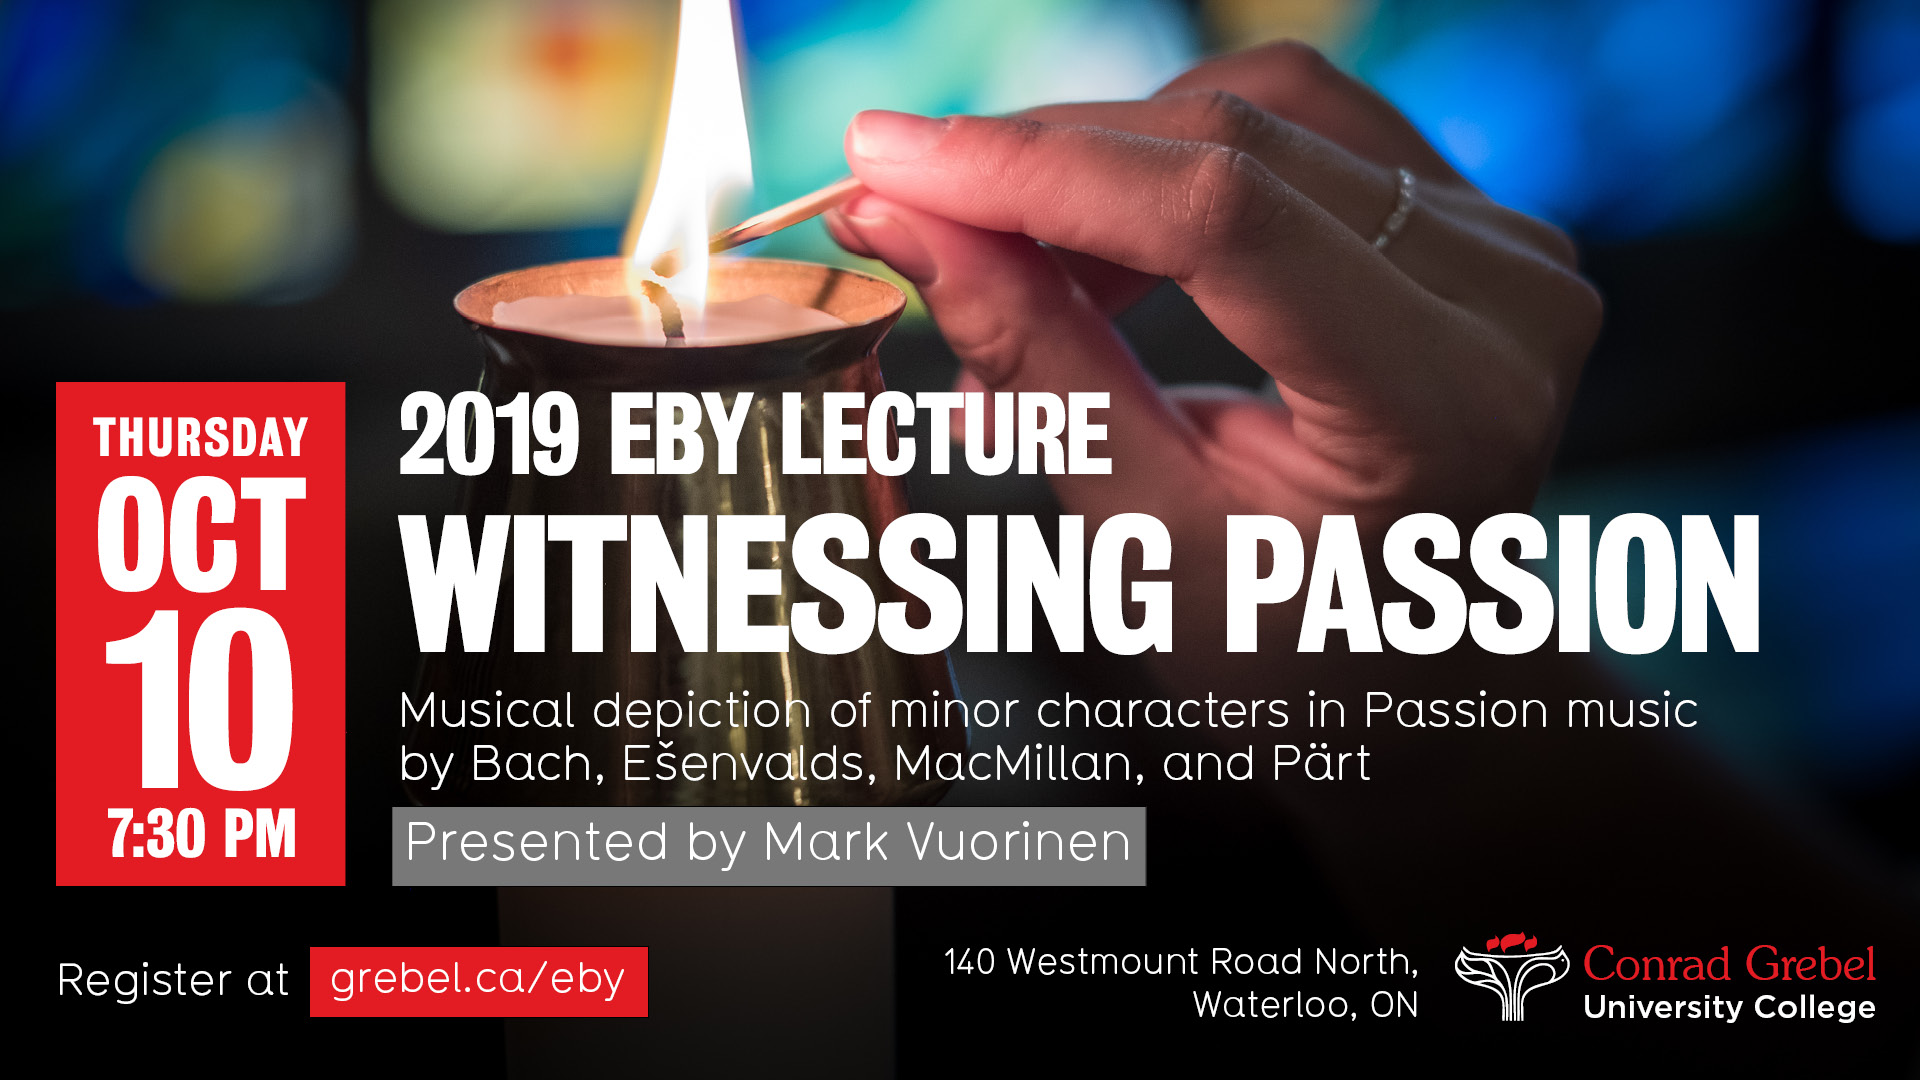 2019 Eby Lecture - Witnessing Passion